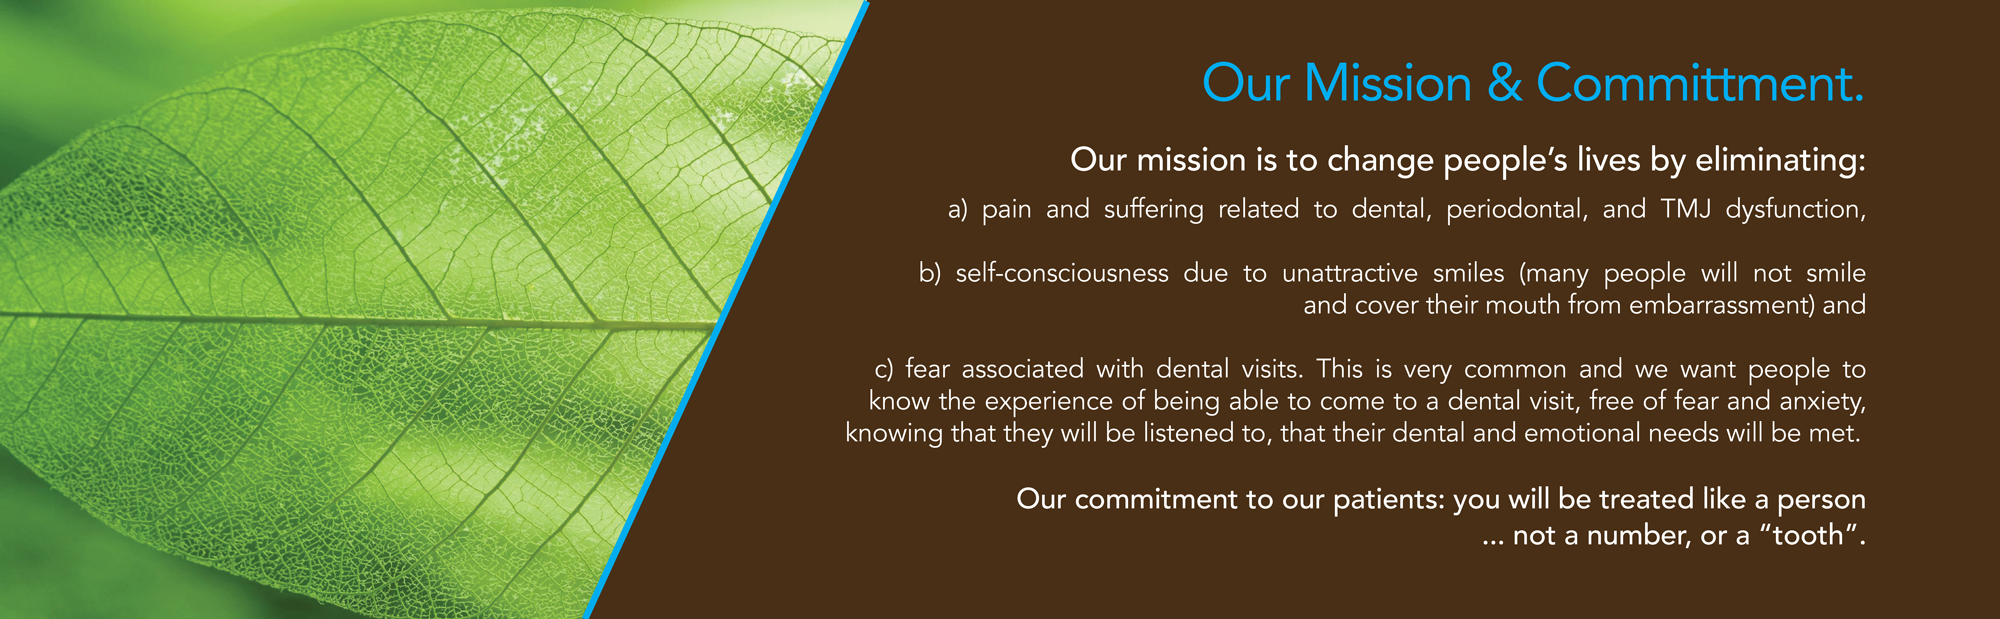 side10_mission-statement-leaf-FINAL_WEB